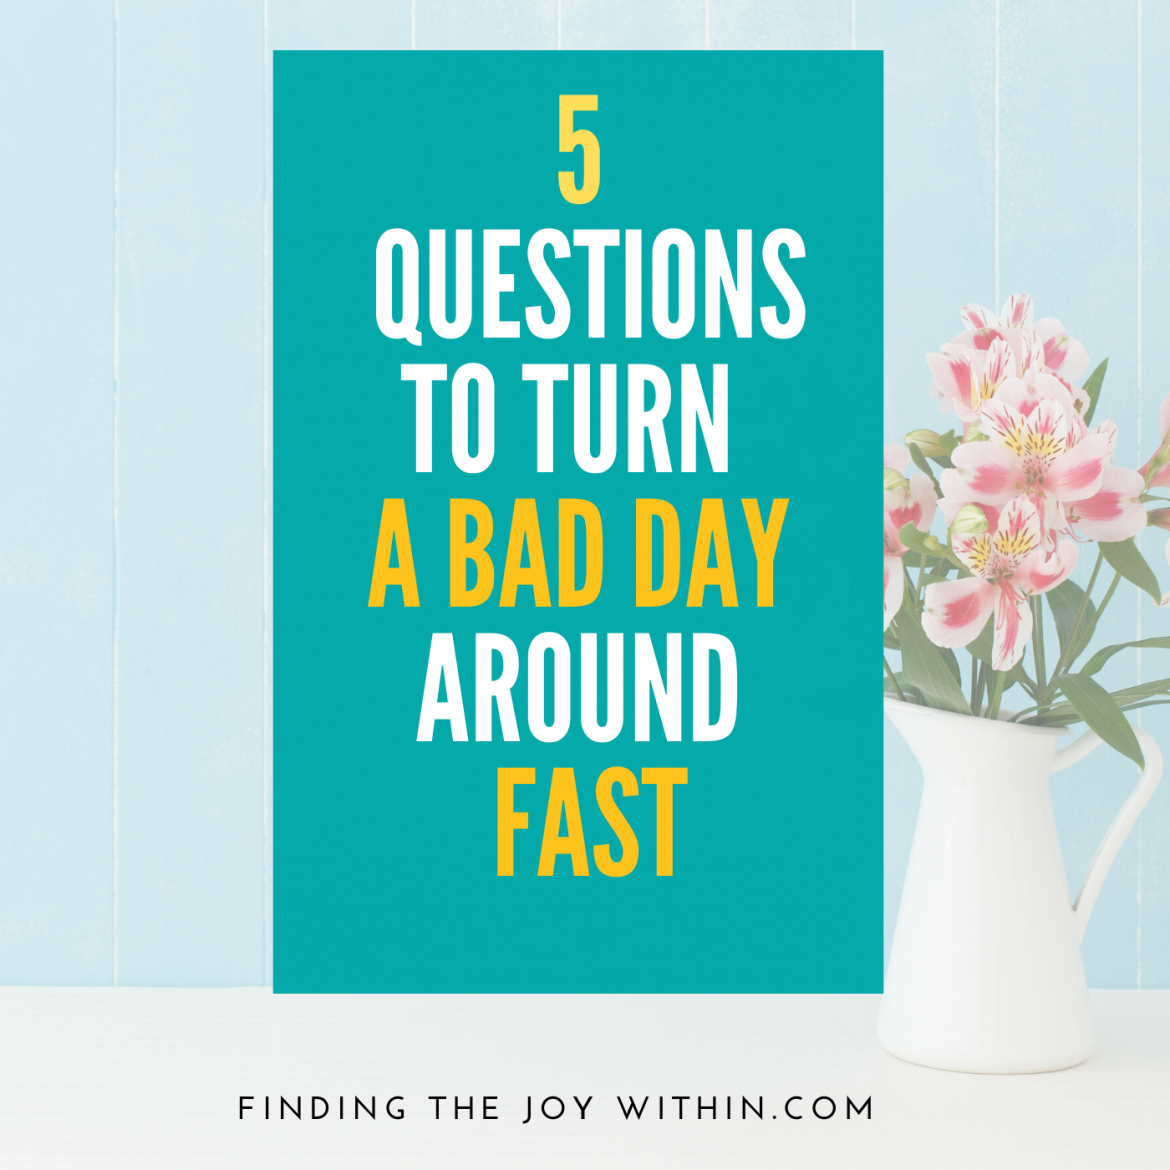 5 Questions To Turn A Bad Day Around Fast